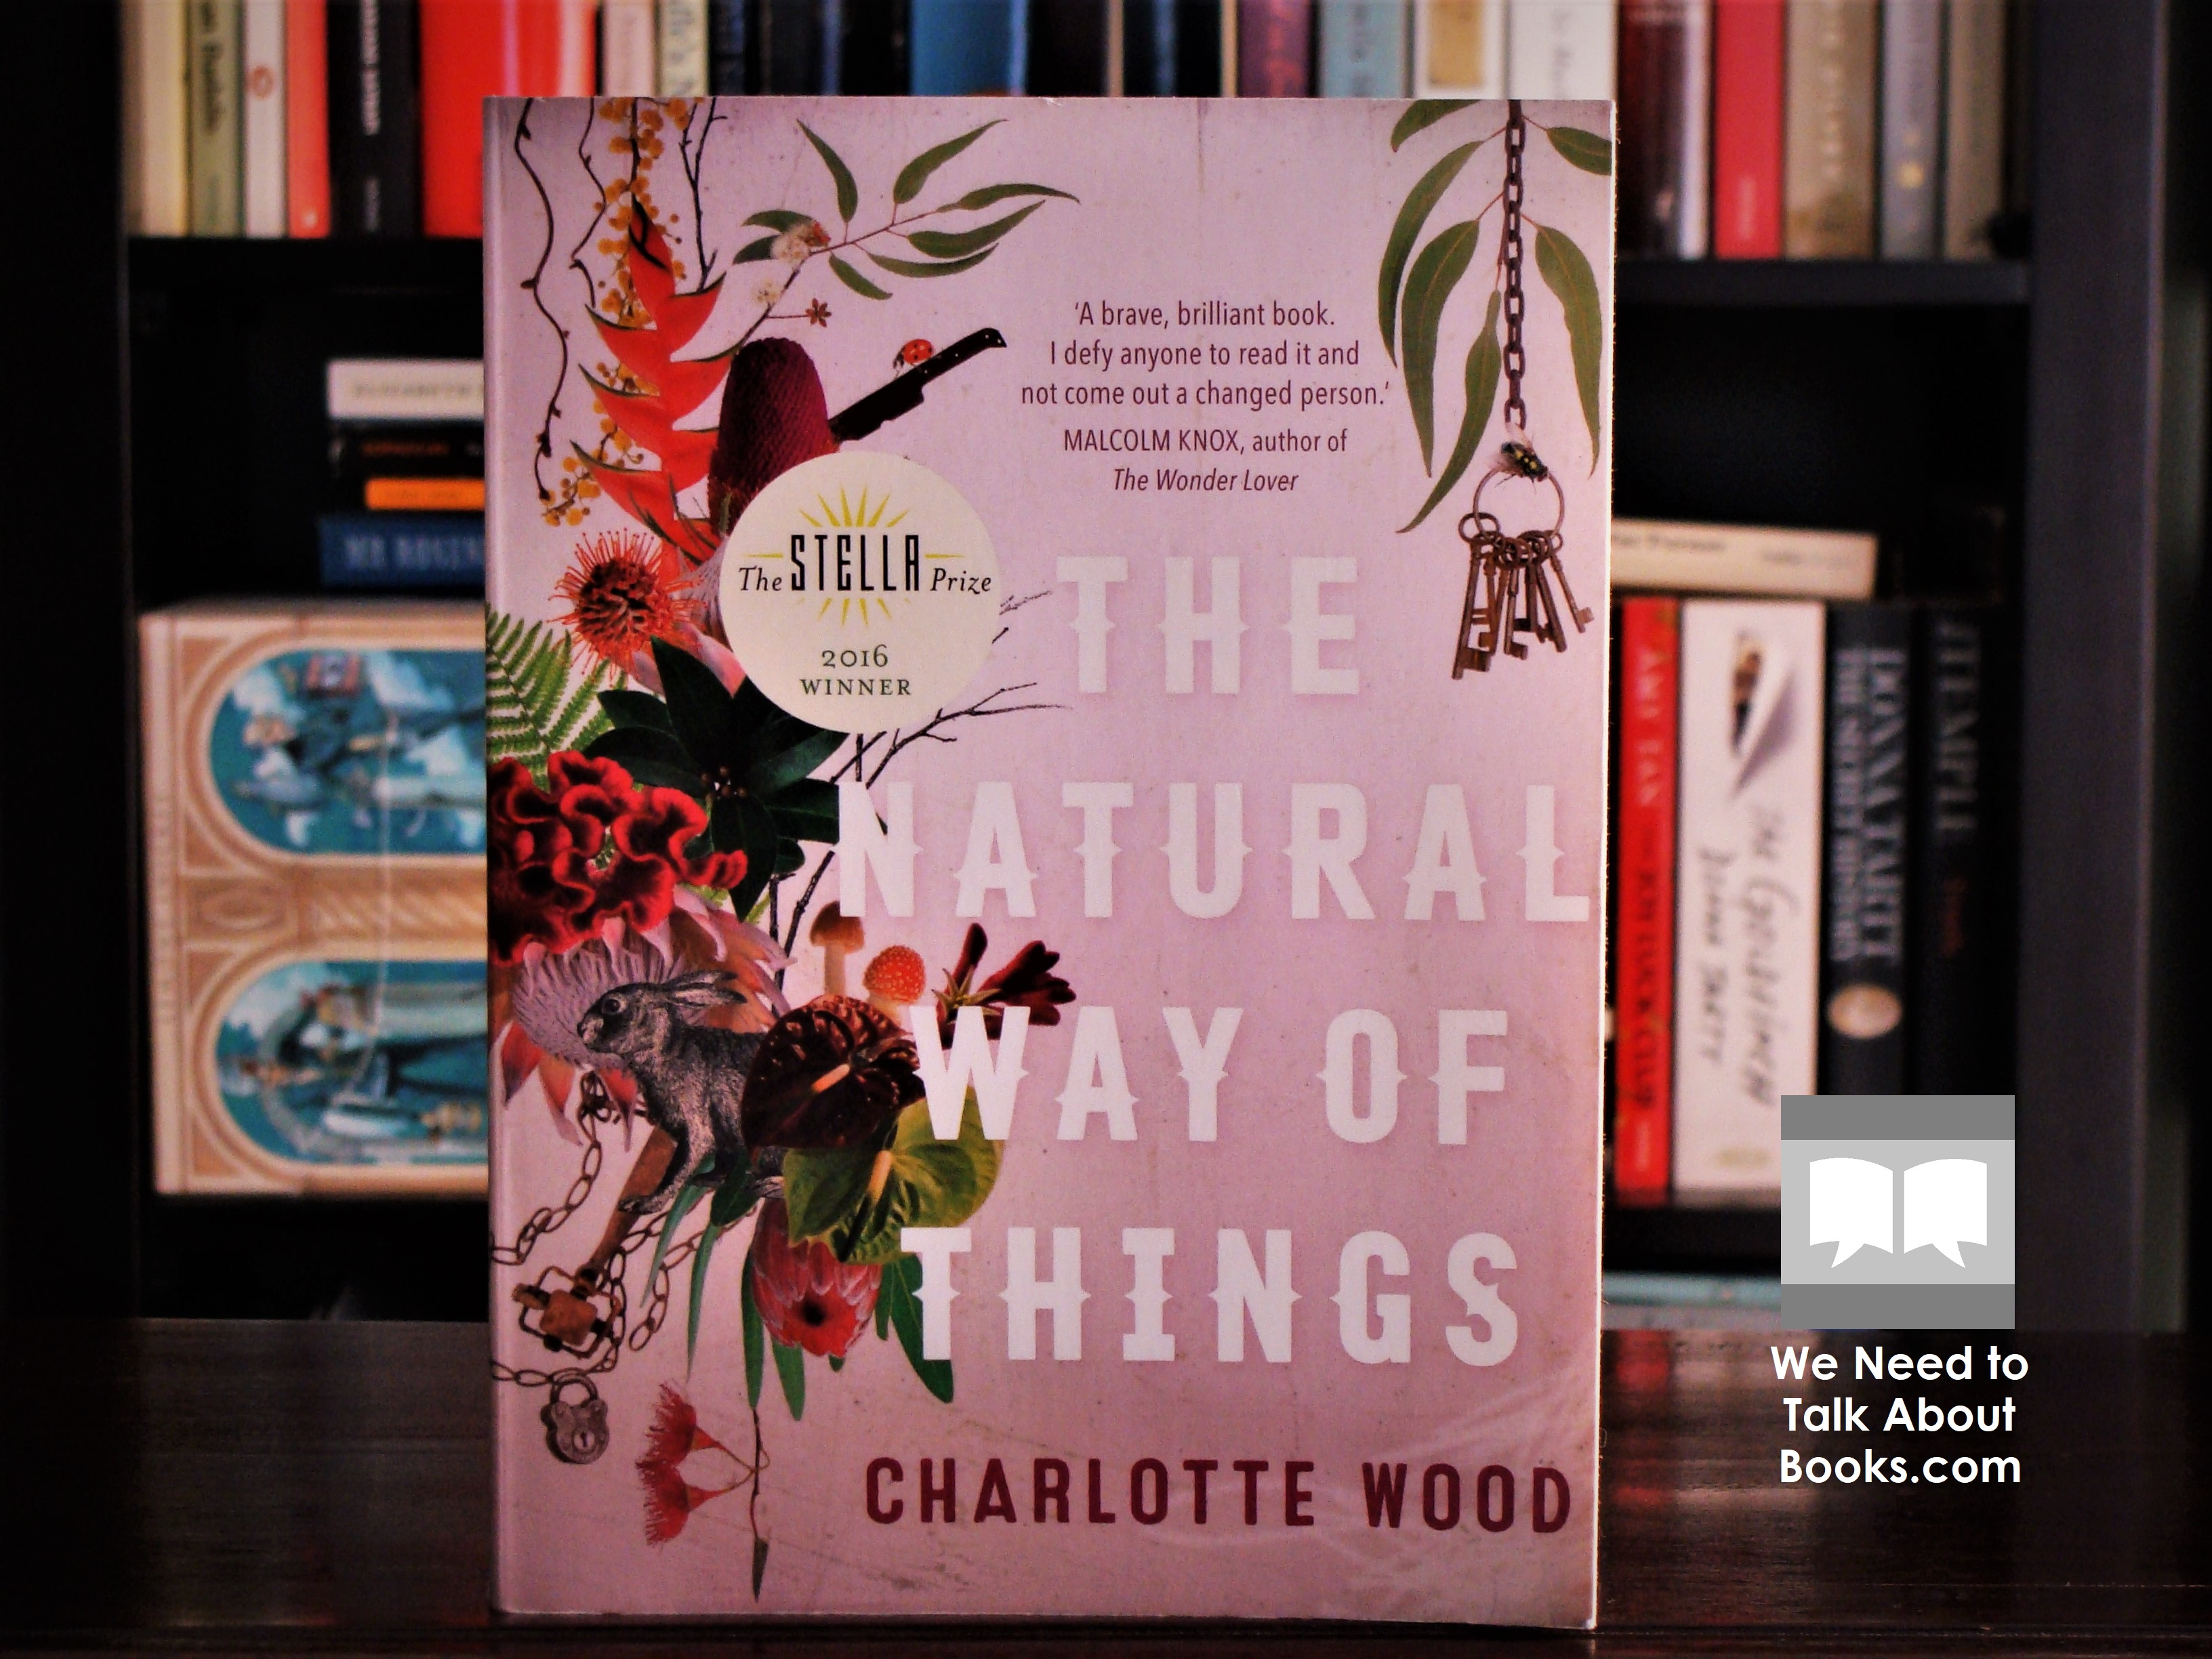 Cover Image of The Natural Way of Things by Charlotte Wood